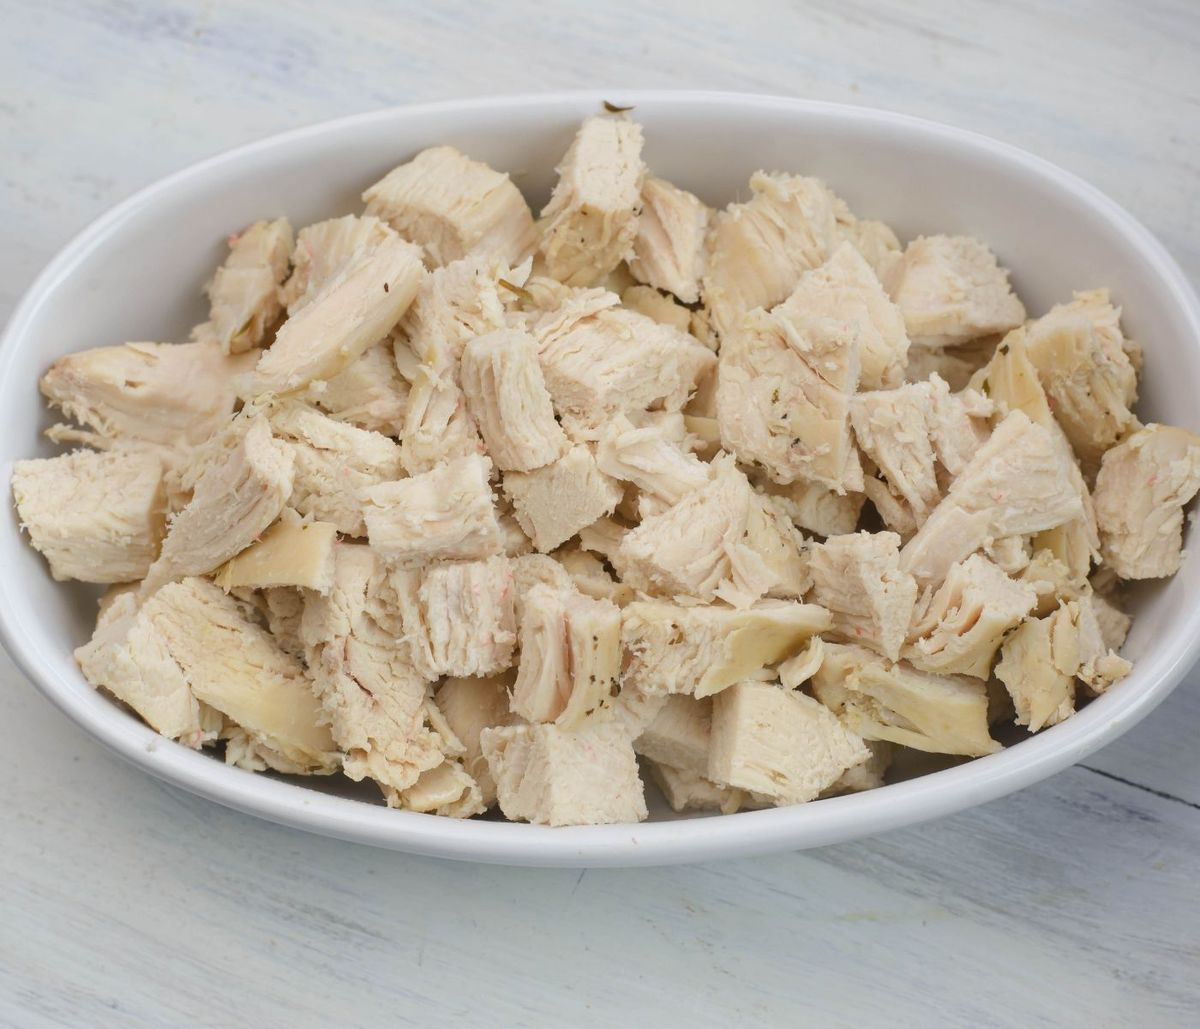 Diced chicken in a small oval bowl.